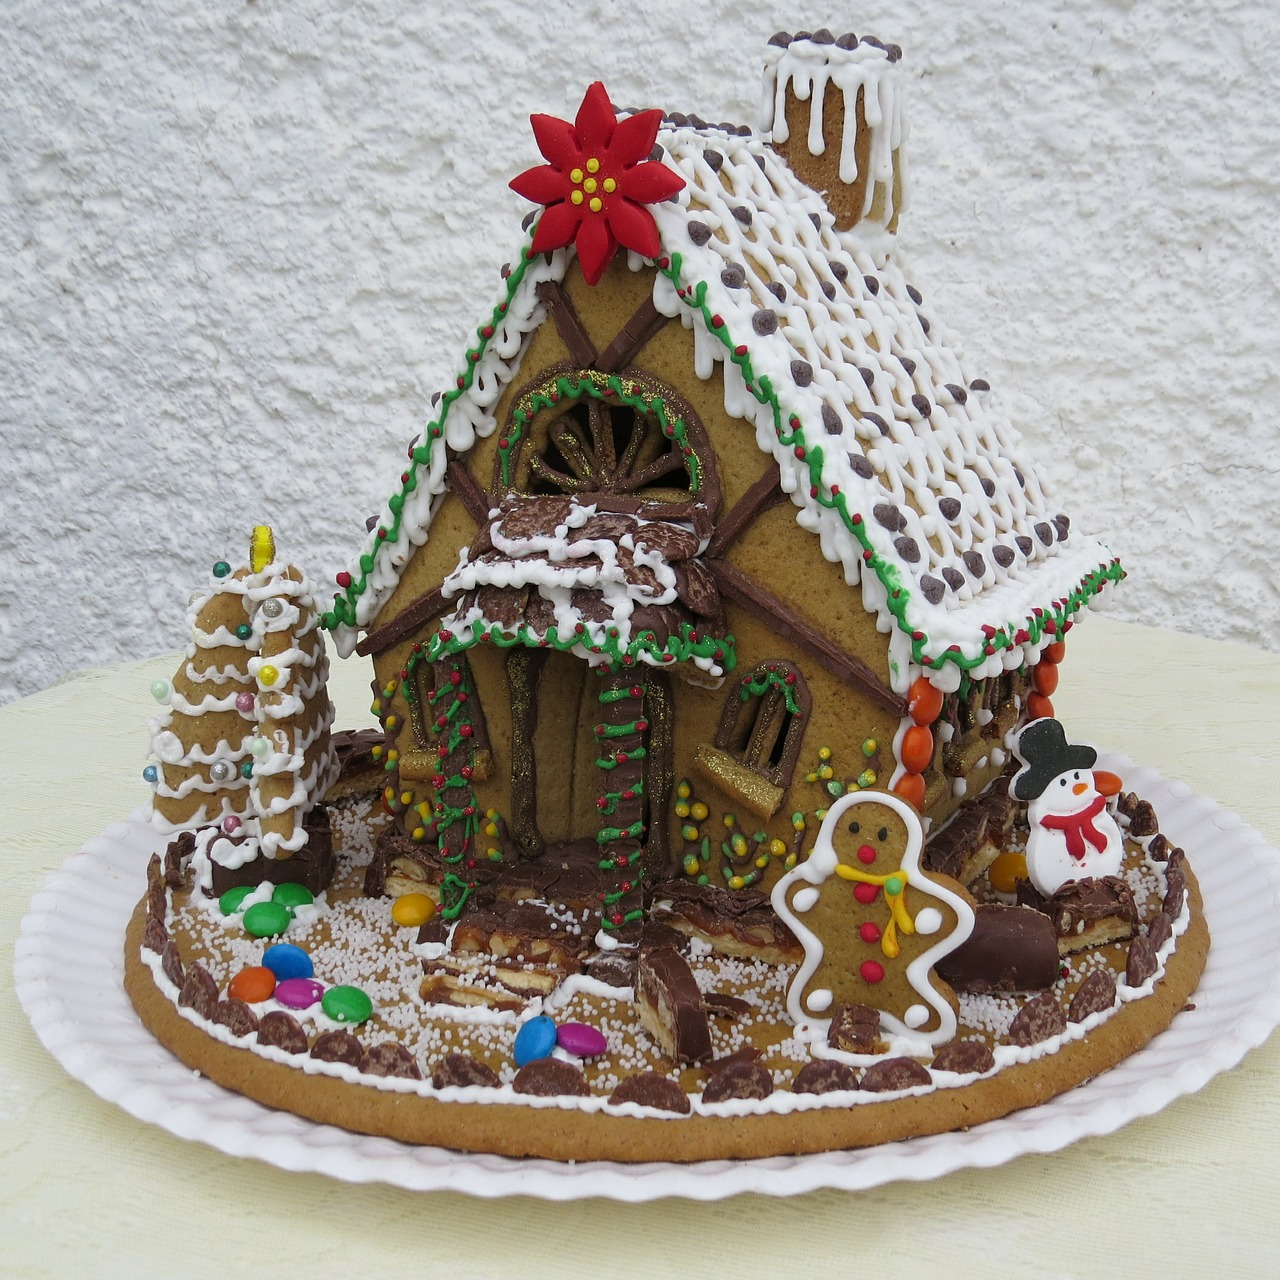 Creative DIY Candy Decorations And Gingerbread Houses To Make This ...